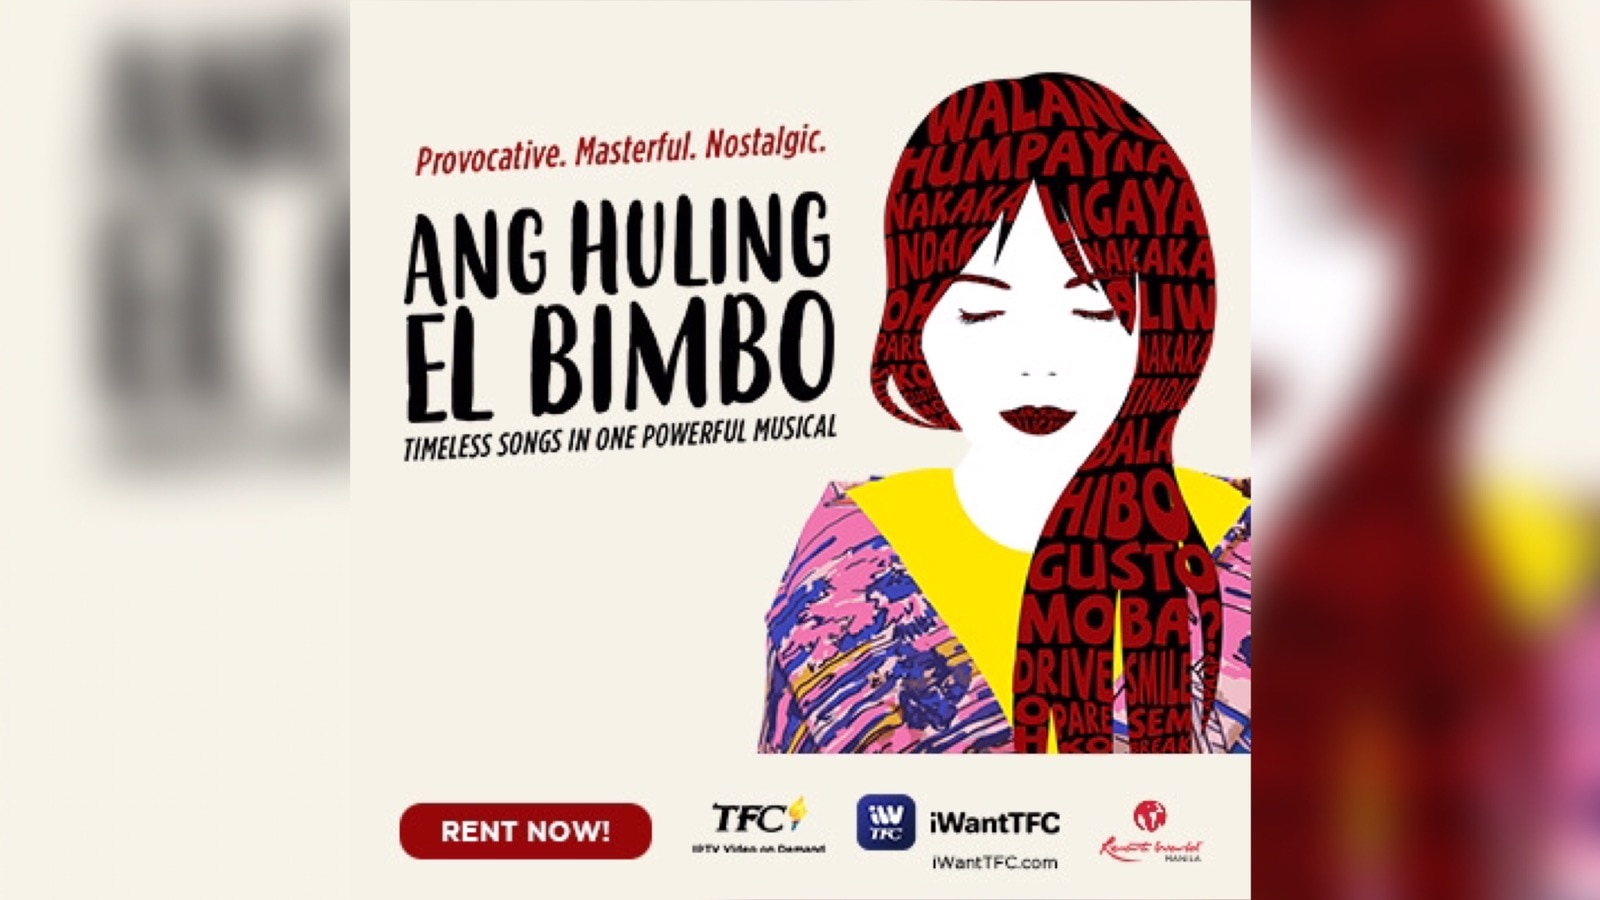 """Life in the rhythm of 90s OPM music in the nostalgic """"Ang Huling El Bimbo"""" musical, now available worldwide on TFC IPTV and iWantTFC"""